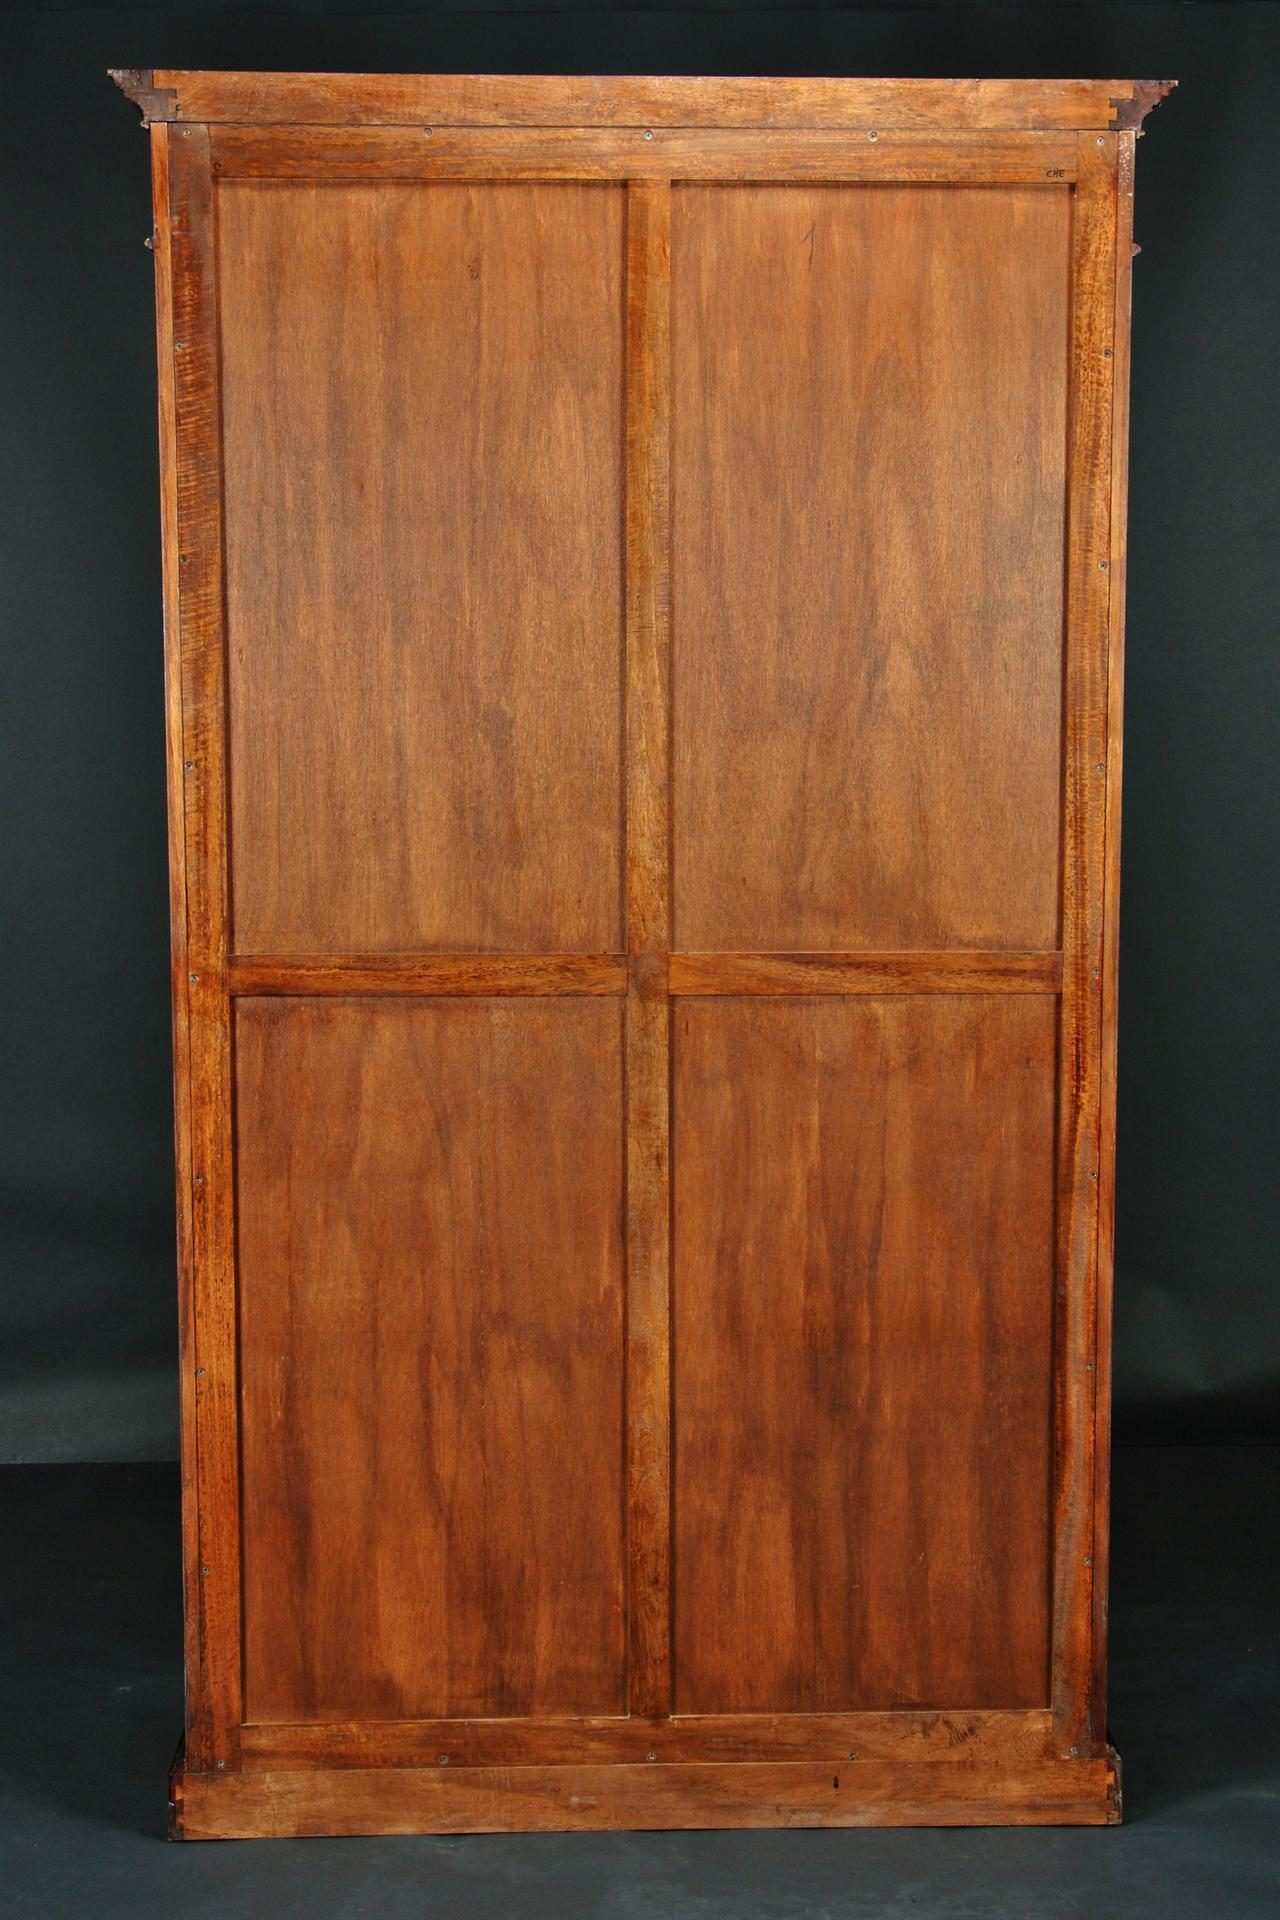 Image of: Tall Bookshelves With Doors